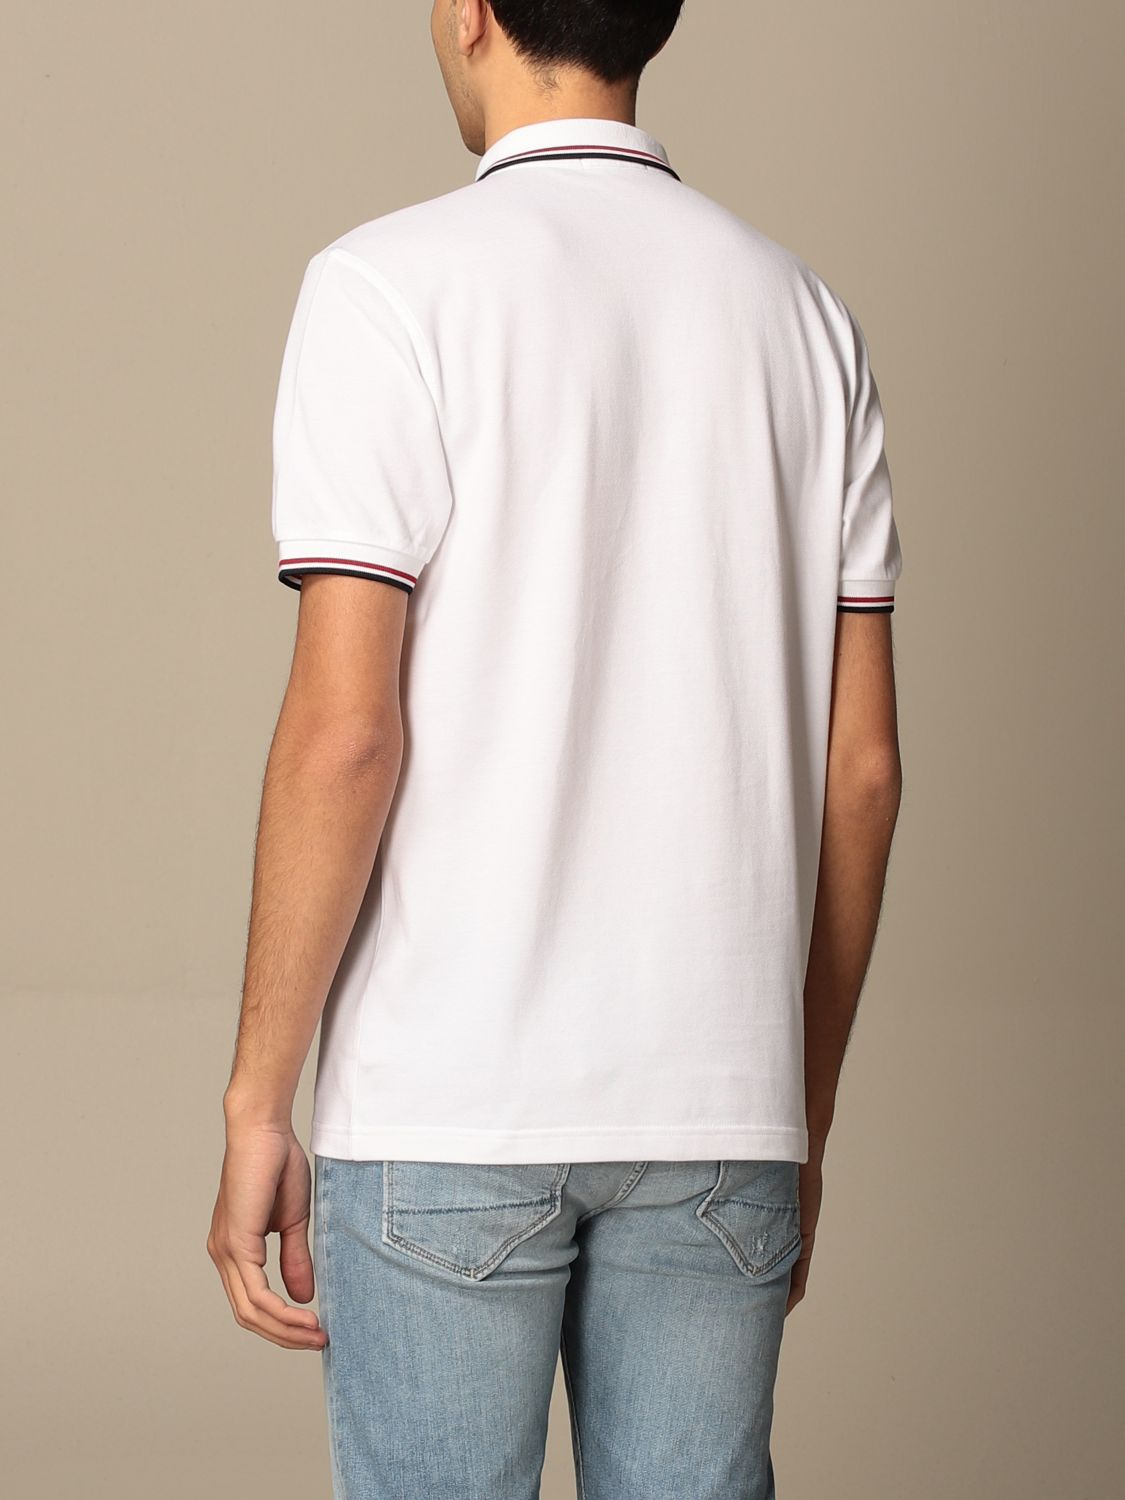 Polo shirt Fred Perry: Polo shirt men Fred Perry white 2